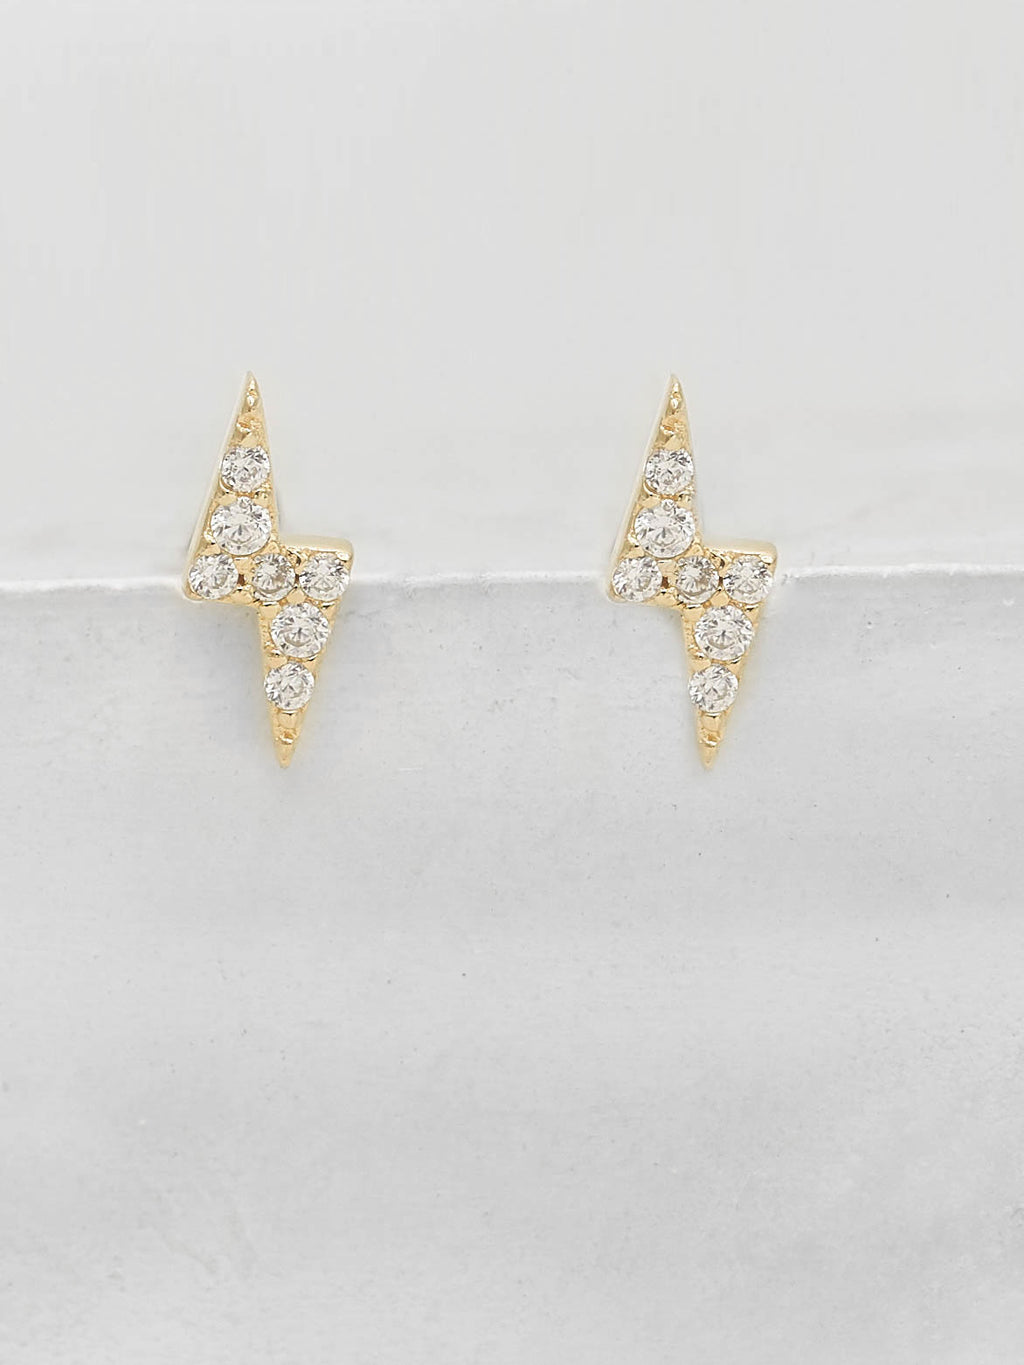 Tiny Lightning Bolt design with White Round CZ Cubic Zirconia Stud Earrings by The Faint Hearted Jewelry